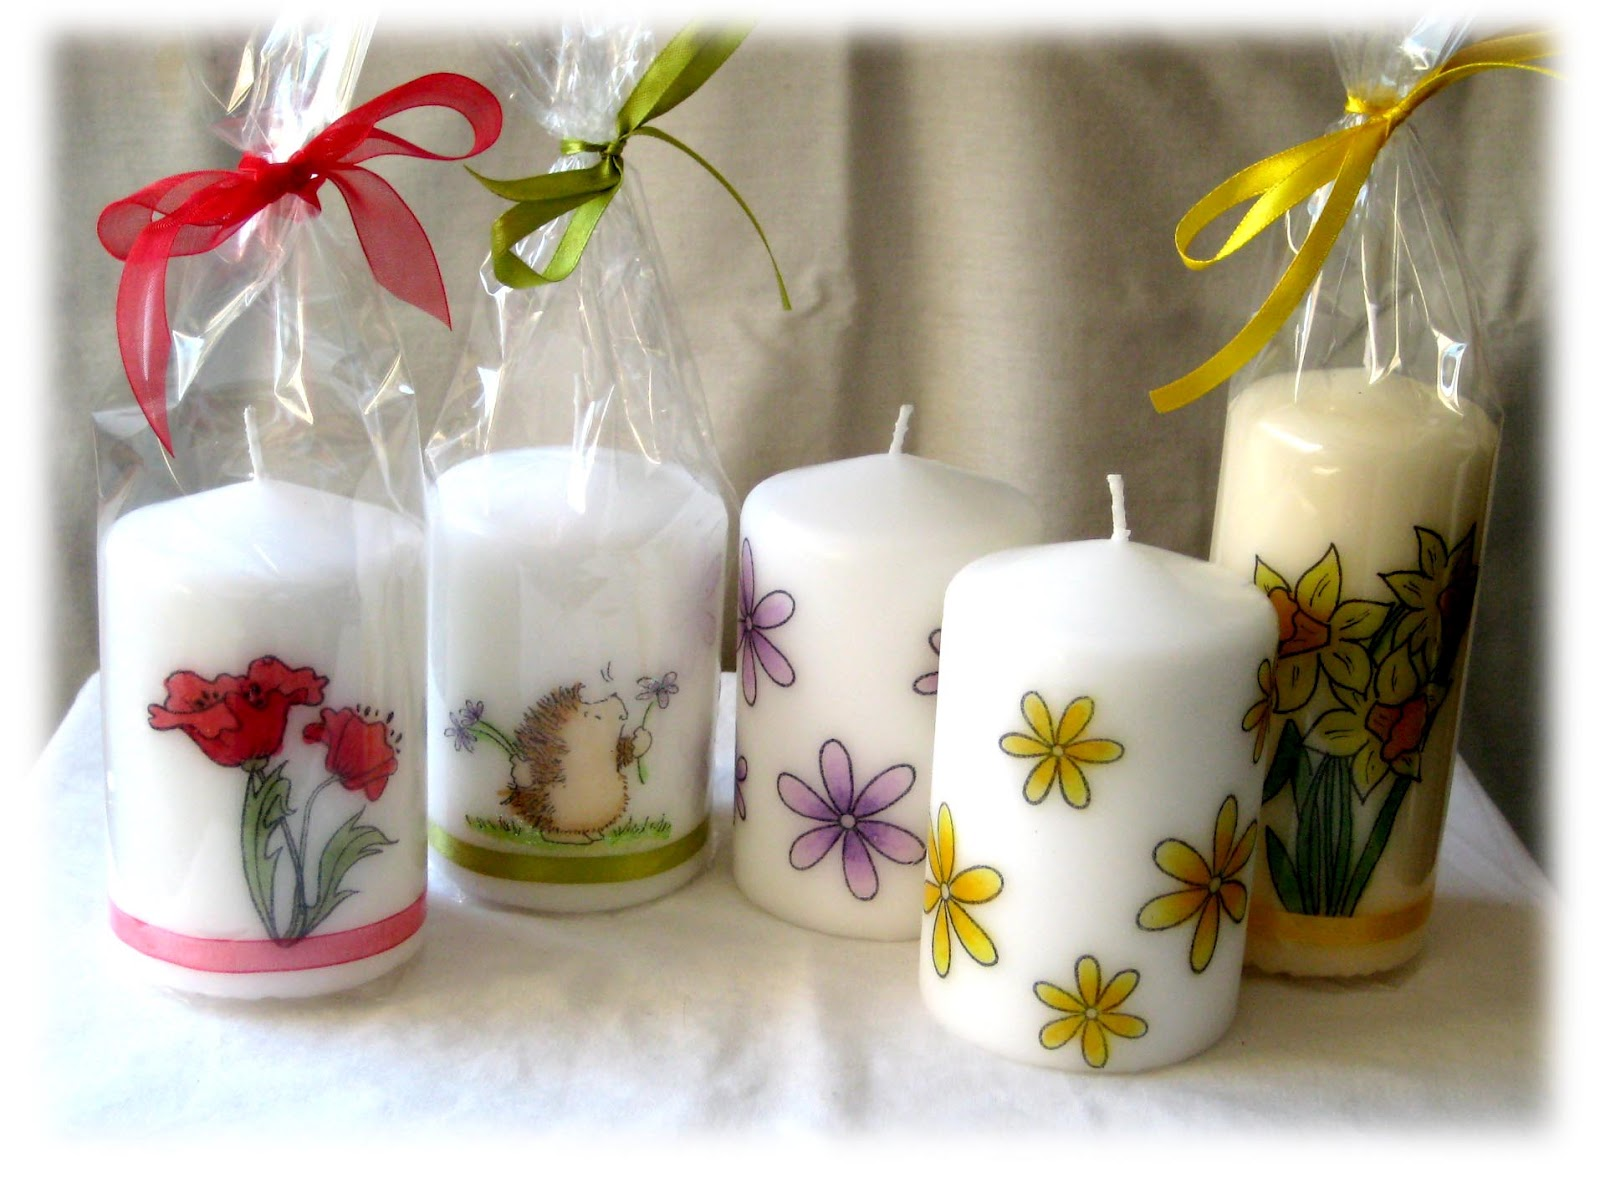 Decorative Candles For Sale Linda 39s Candle Corner And Chocolate Bouquets Decorative